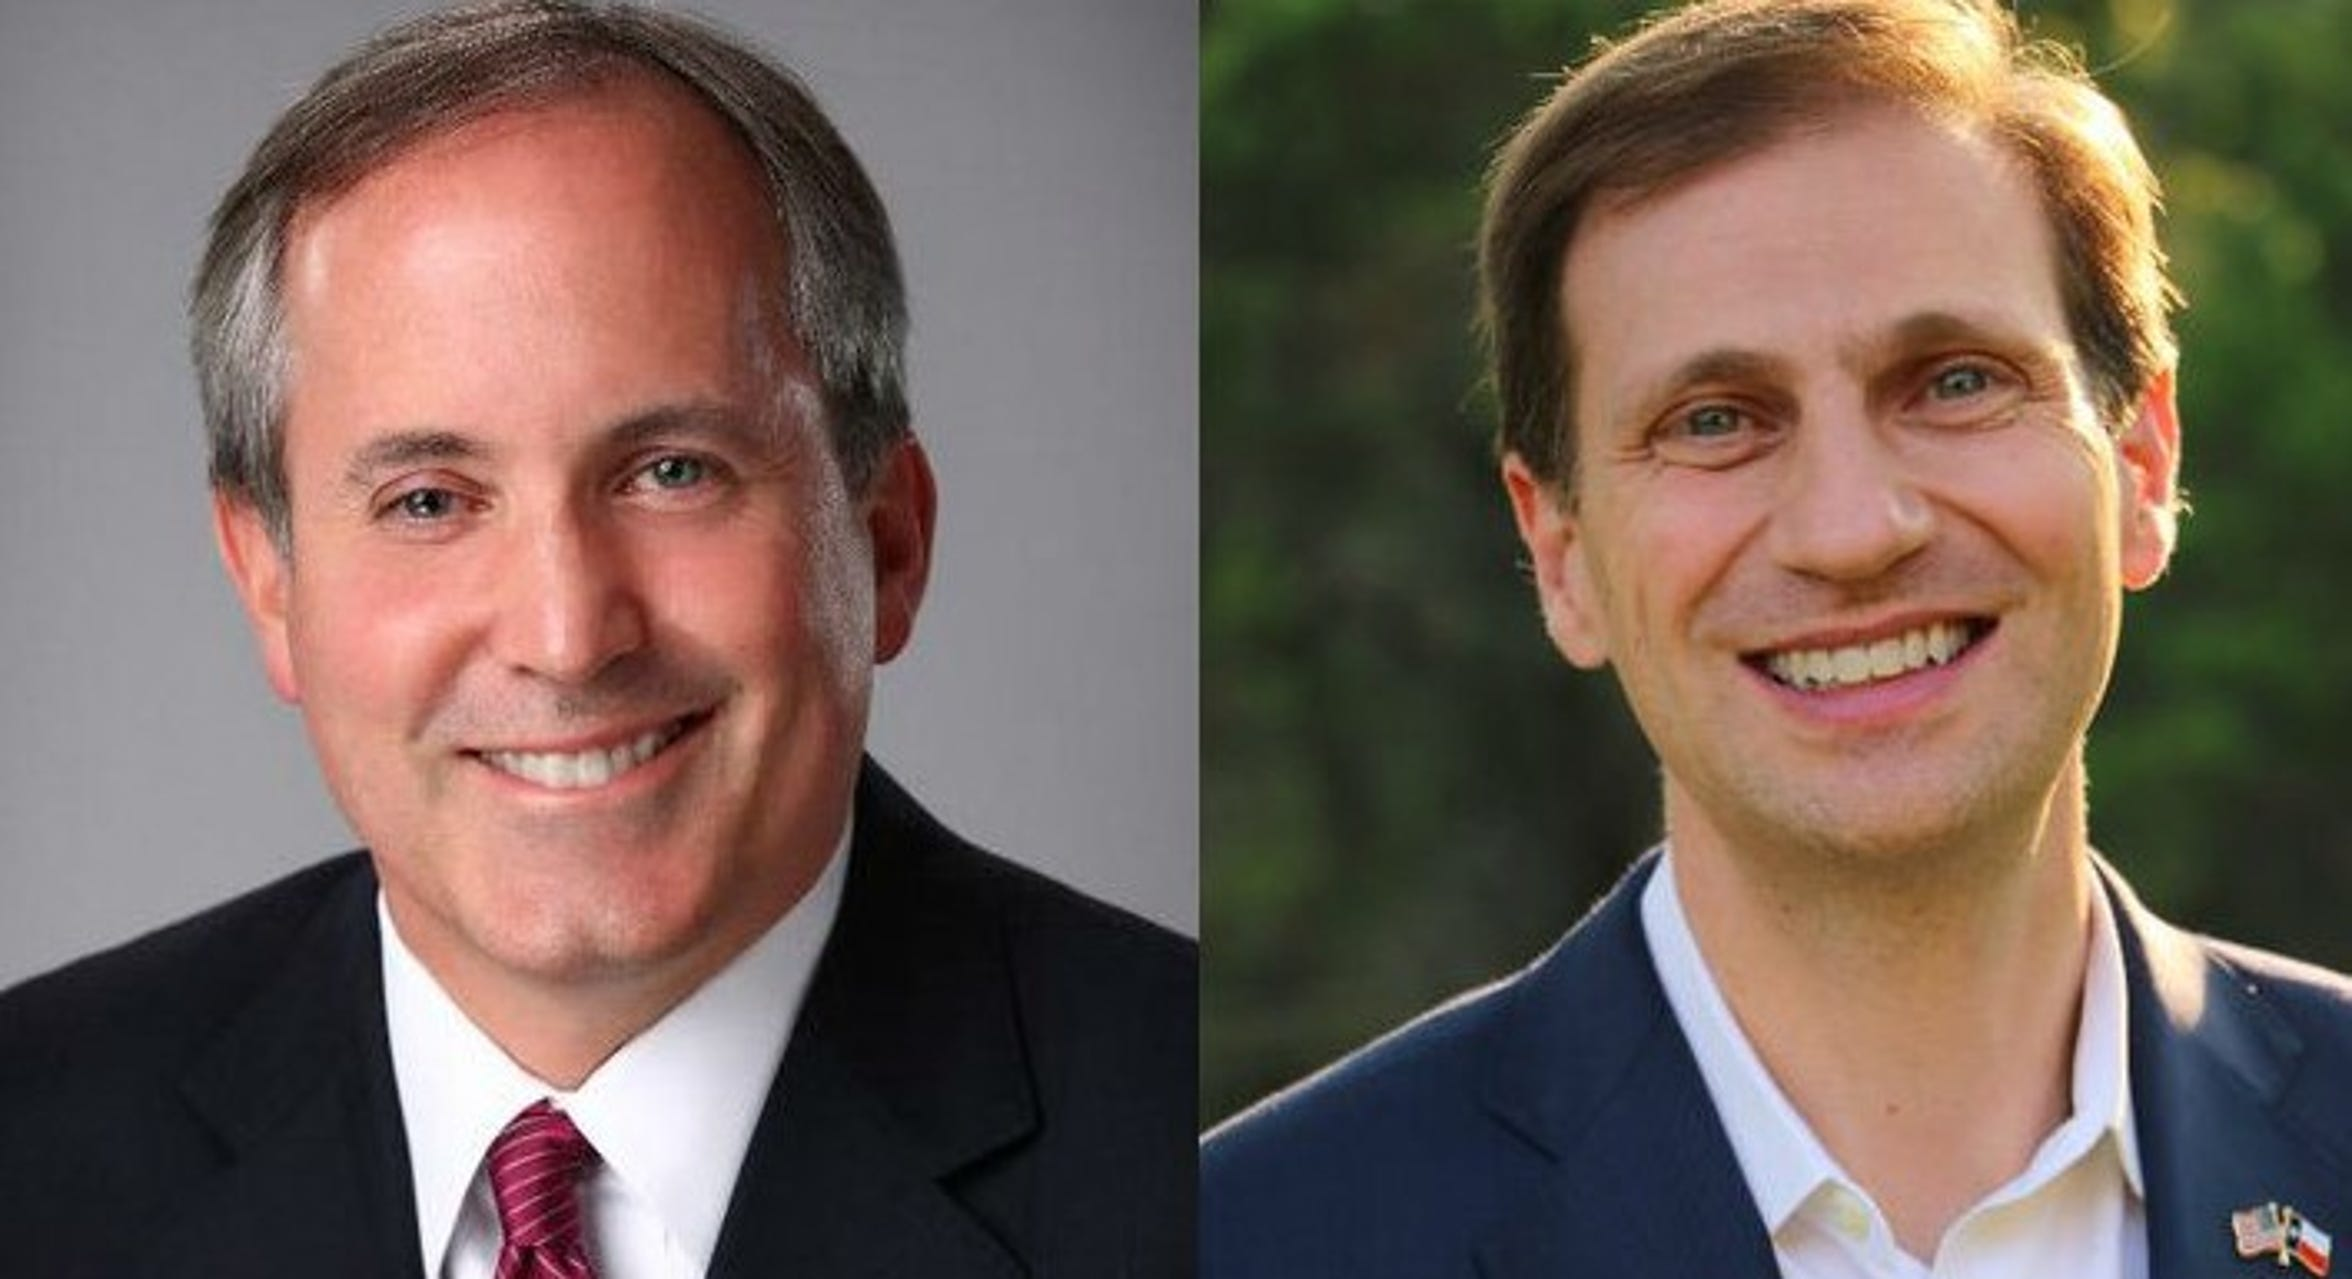 Ken Paxton and Justin Nelson